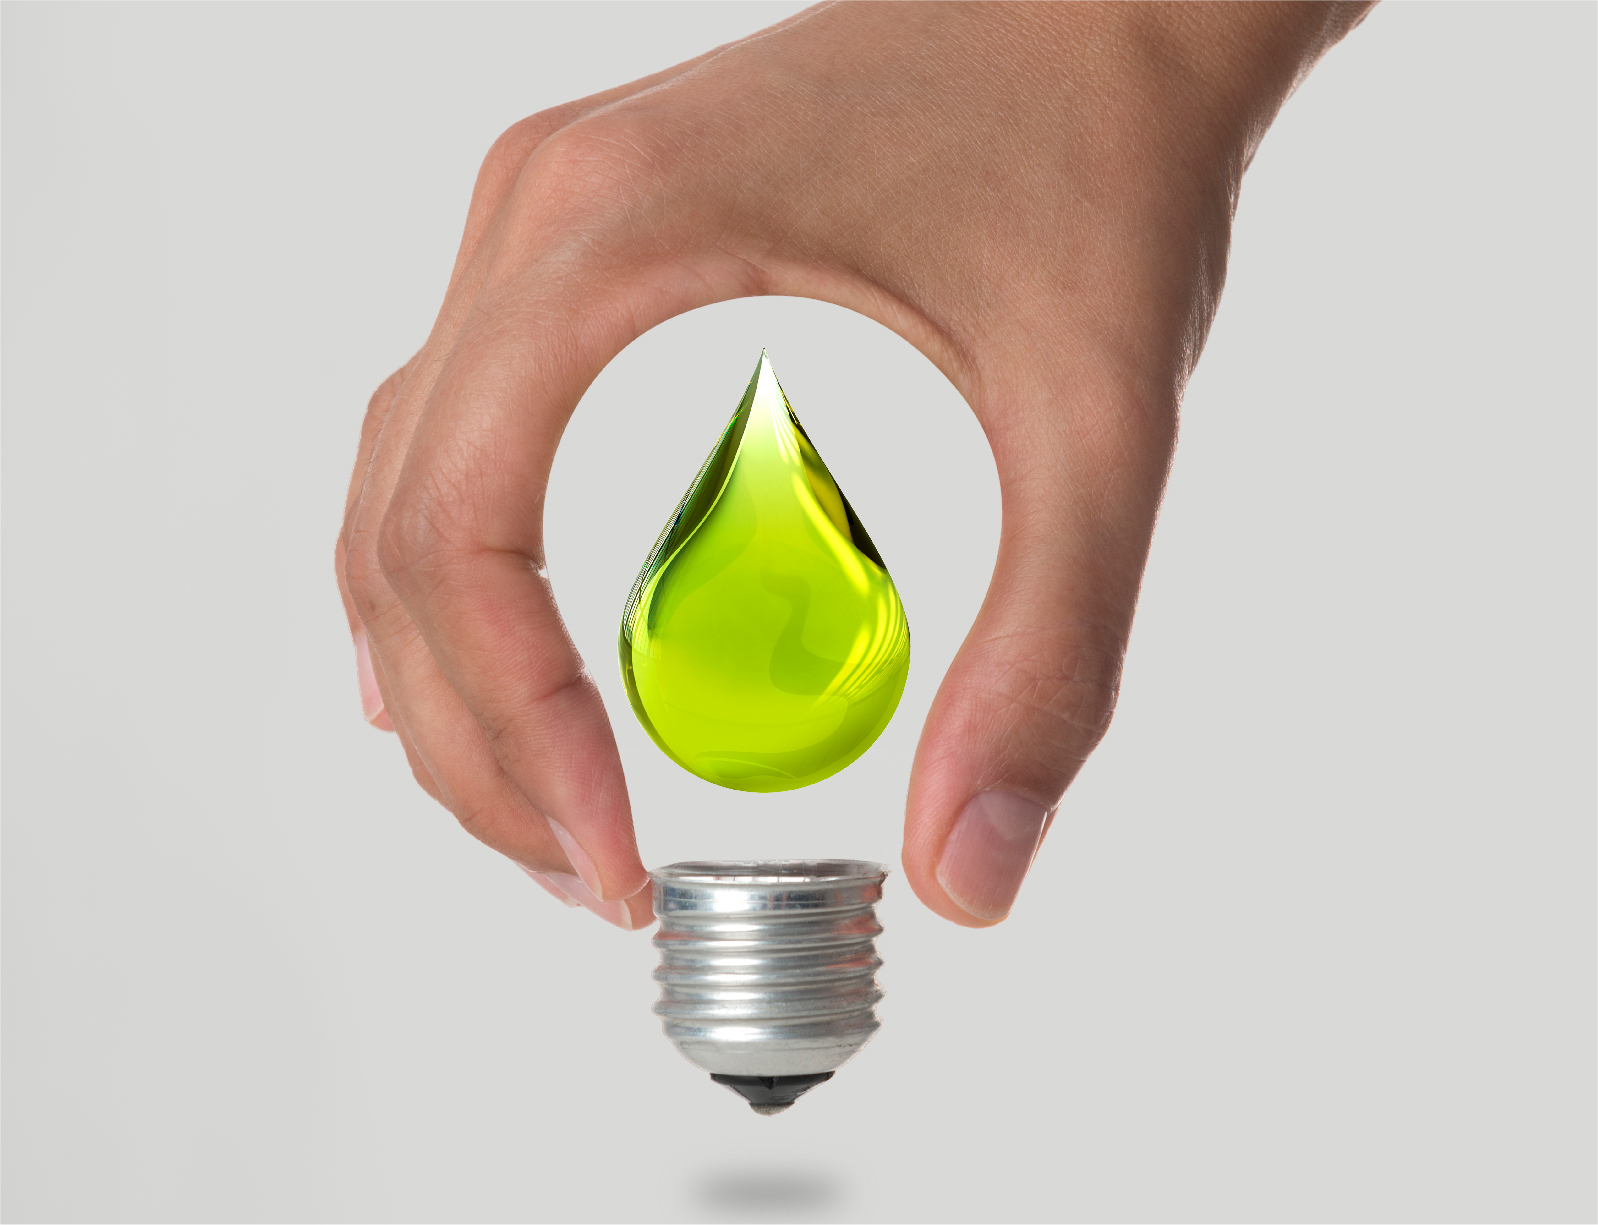 hand holding green fuel style light bulb